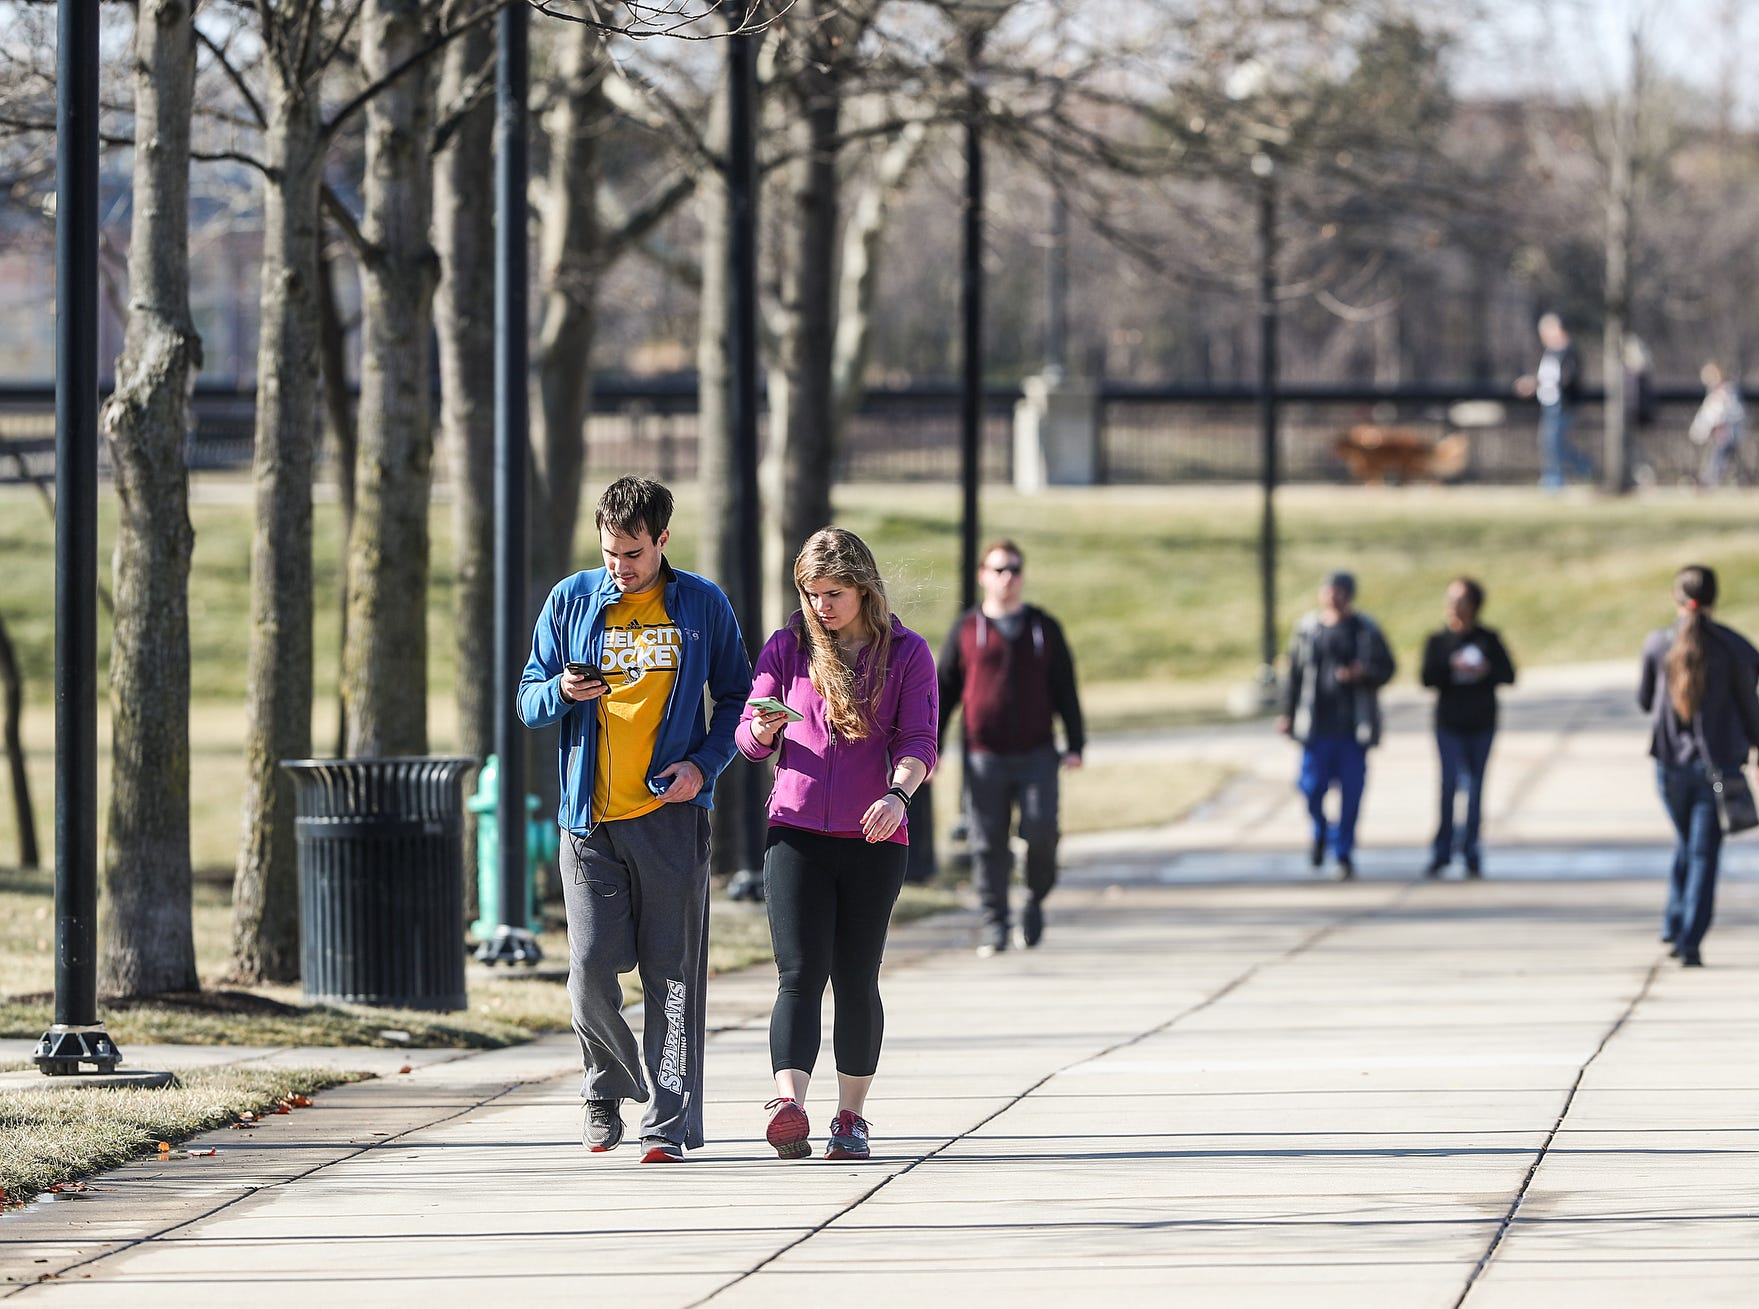 Pedestrians enjoy a 65-degree day at White River State Park in Indianapolis, Sunday, Feb. 3, 2019. The warm weather comes just days after sub-zero temperatures swept over Indiana.